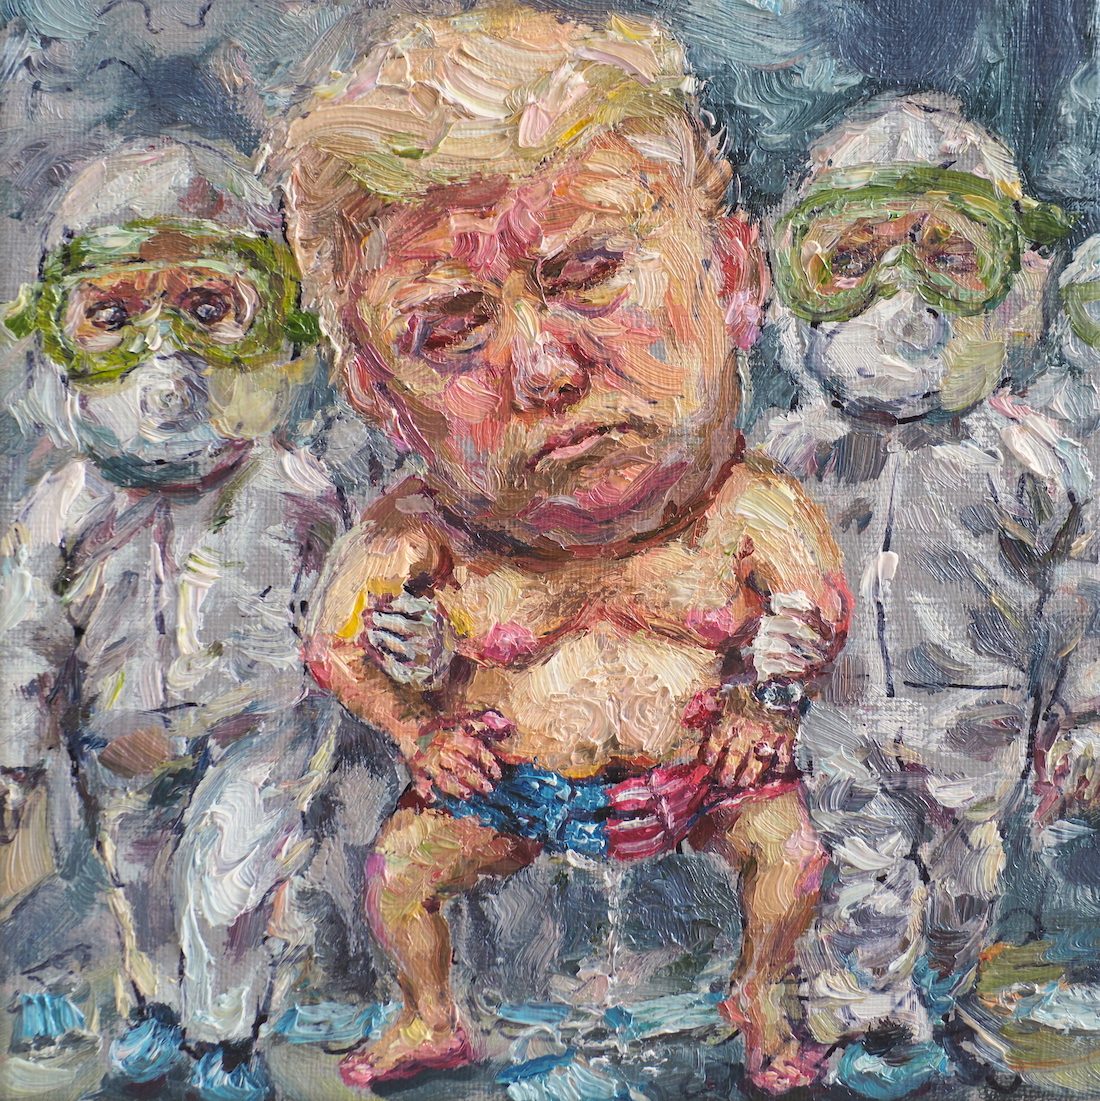 Give me a diaper, oil on linen, 15x15cm.